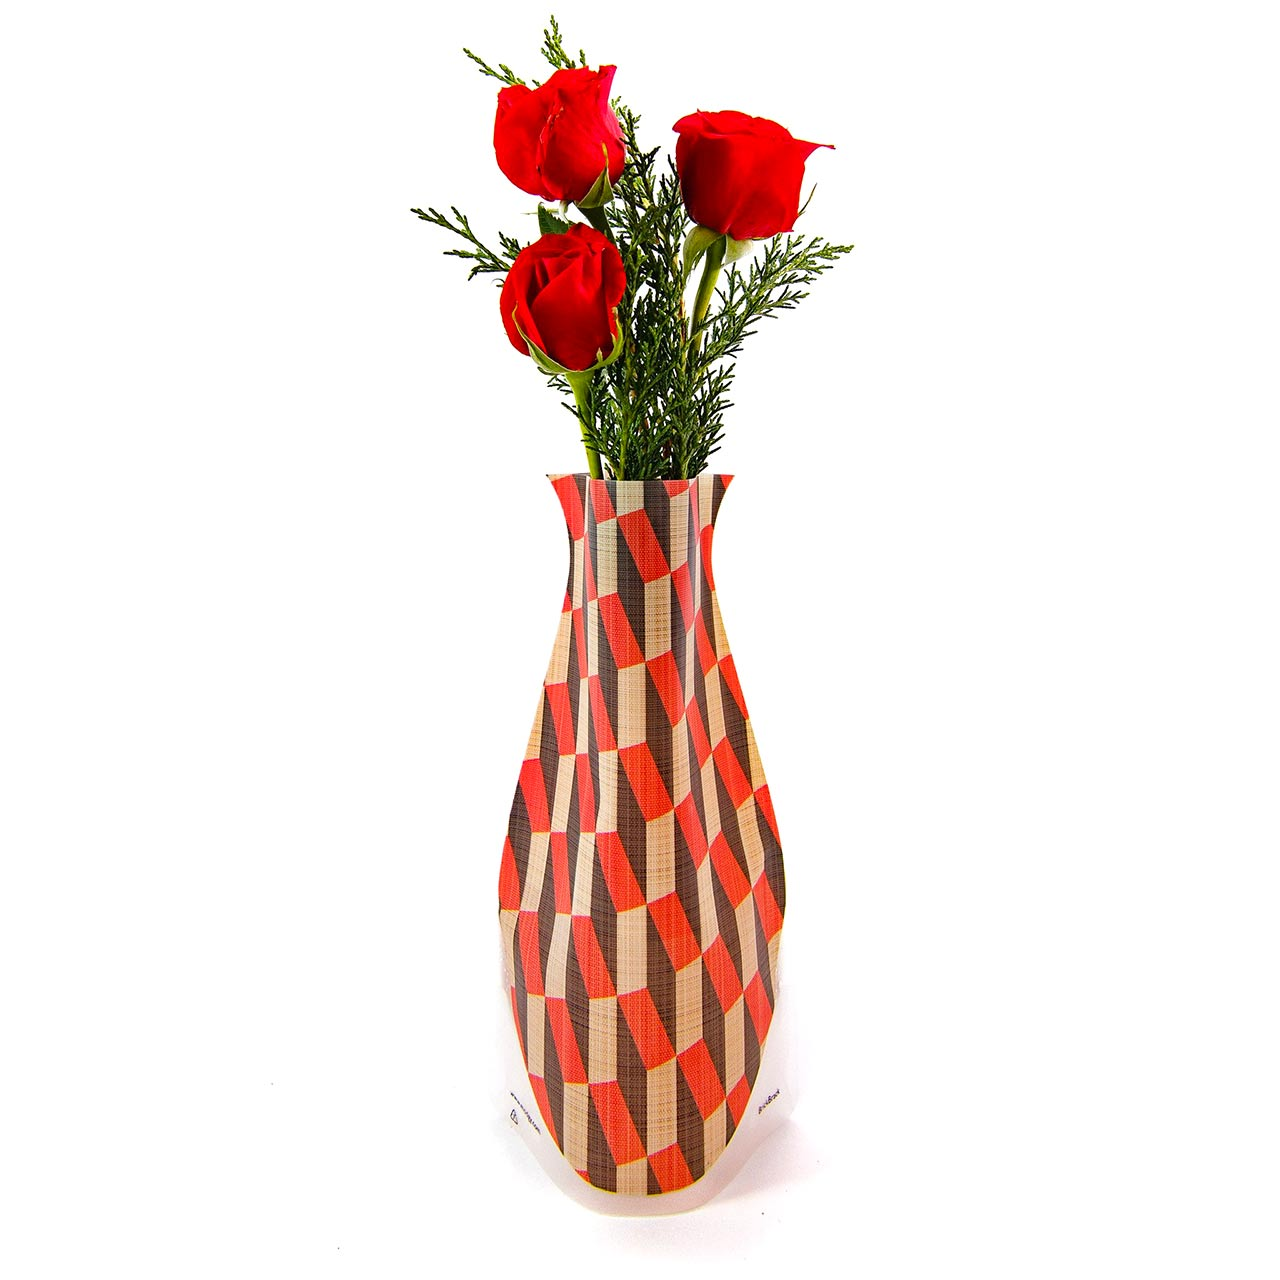 Expandable and Collapsible Vase Brick-Brack | the design gift shop